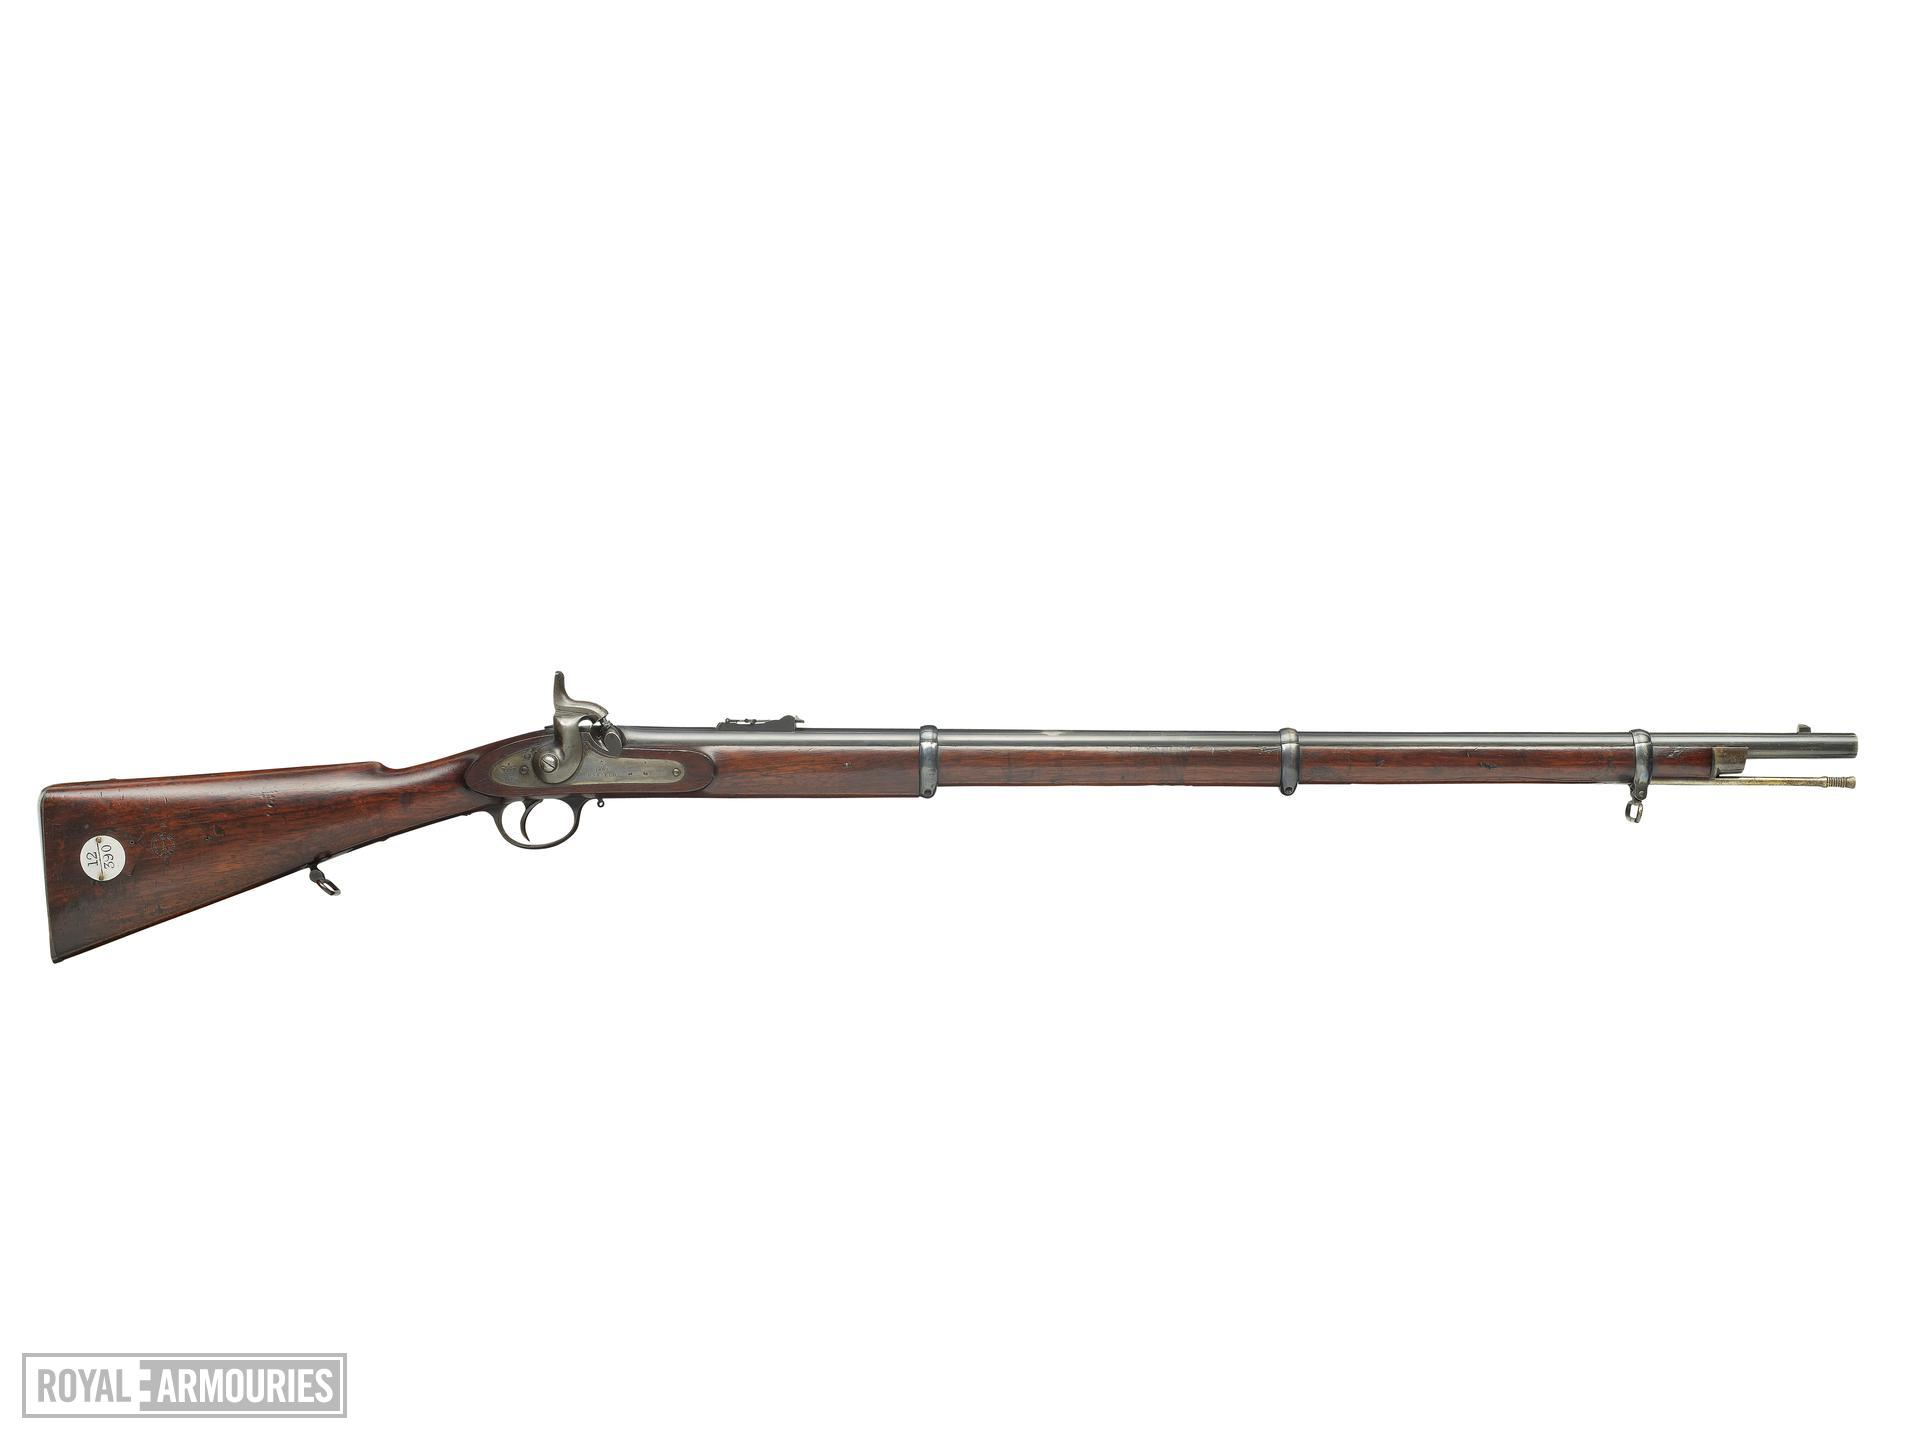 Percussion muzzle-loading military rifle - Enfield-Whitworth Pattern 1862